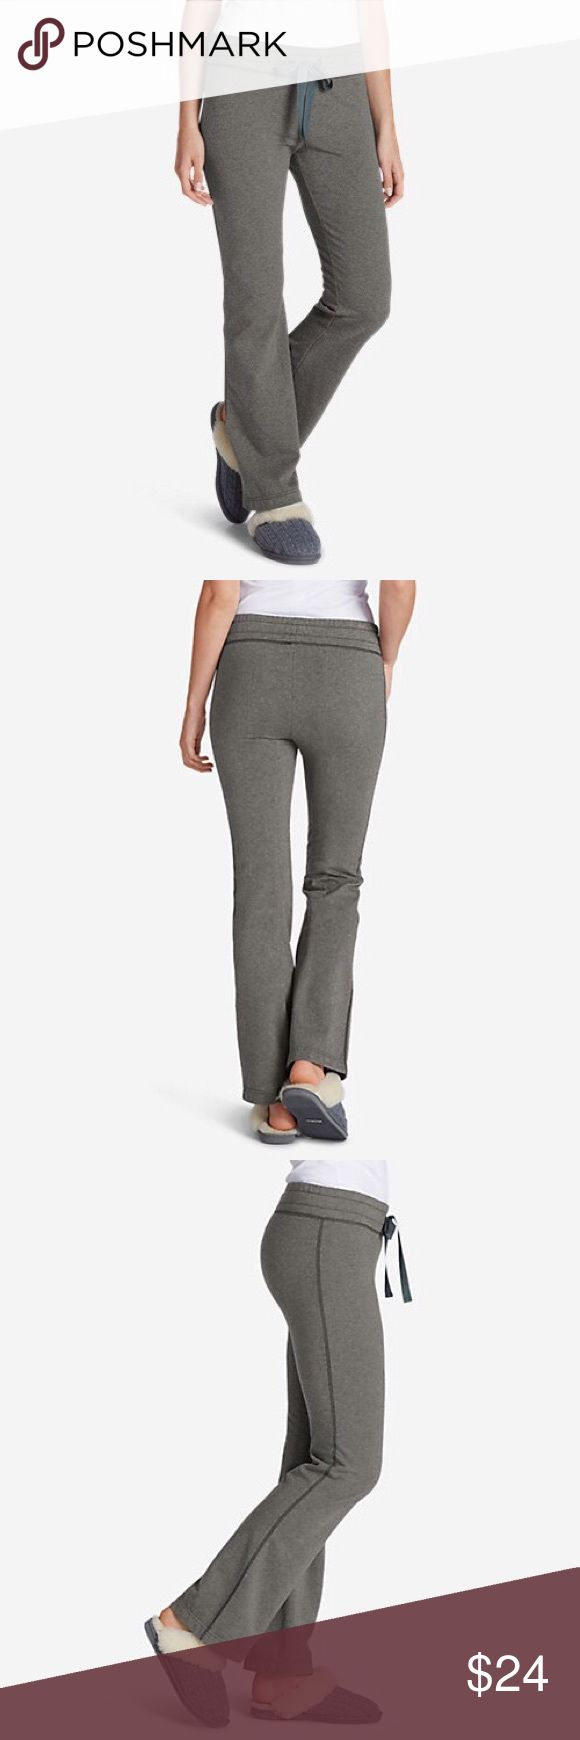 Ladies EDDIE BAUER Brushed Fleece Gray Pants sz L This is a pair of Ladies EDDIE BAUER Brushed Fleece Gray Pants in a sz L, item # 2591 in heather, gently used condition! I ship fast! Happy poshing friends! Eddie Bauer Pants